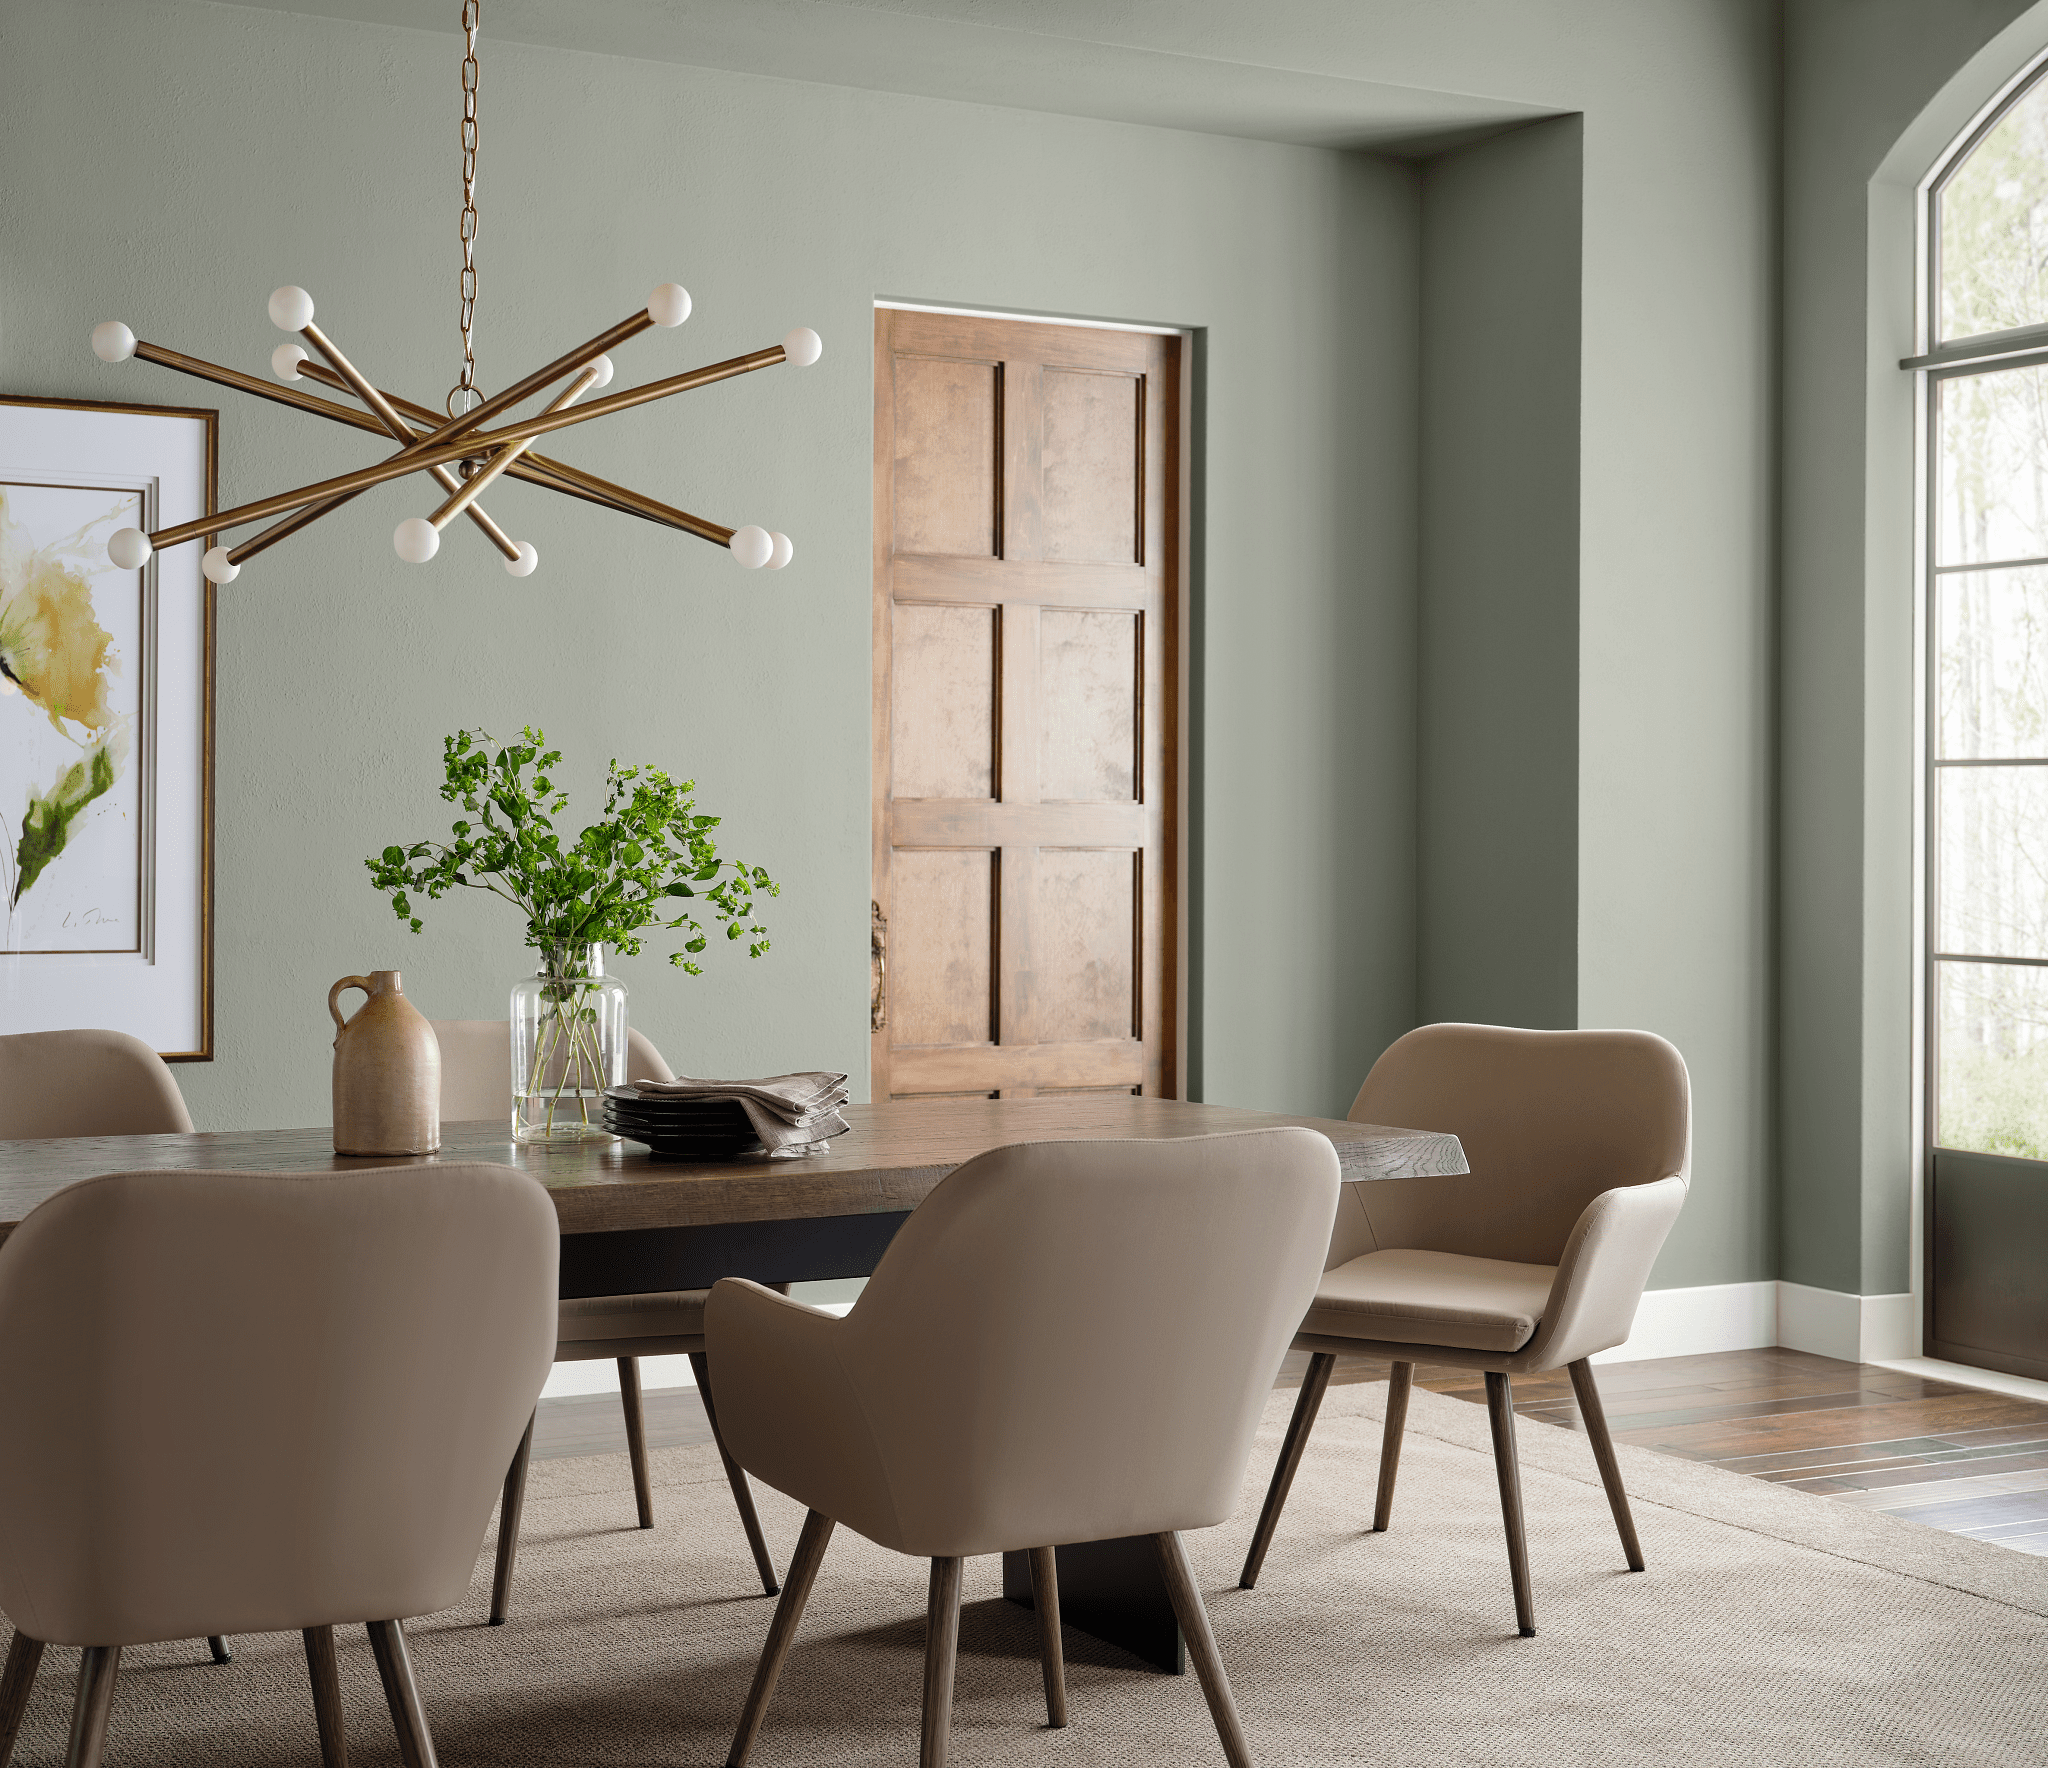 Sherwin-Williams Color of the Year 2022 Evergreen Fog in dining room